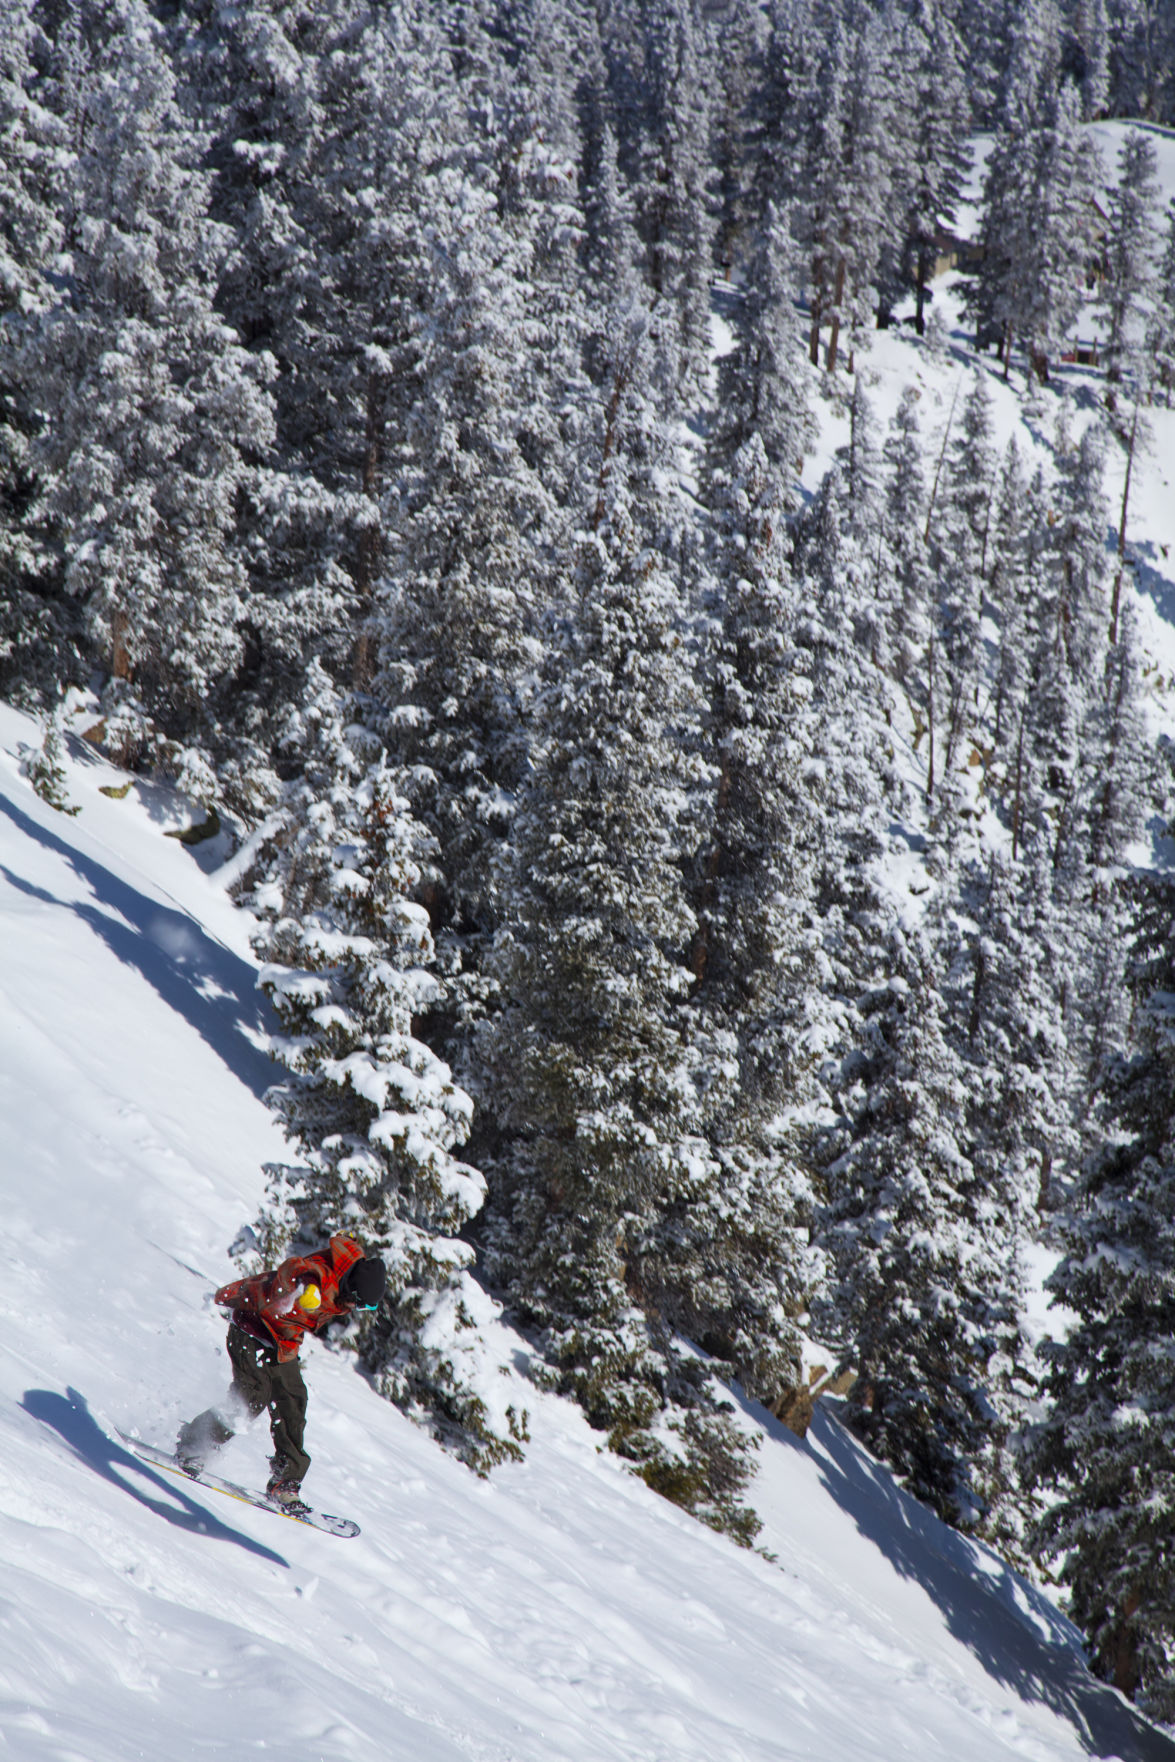 taos ski valley latino personals Signs of permanent settlements have been found in the questa area dating back to 5000 bc taos mesa, taos ski valley and lama new this summer.